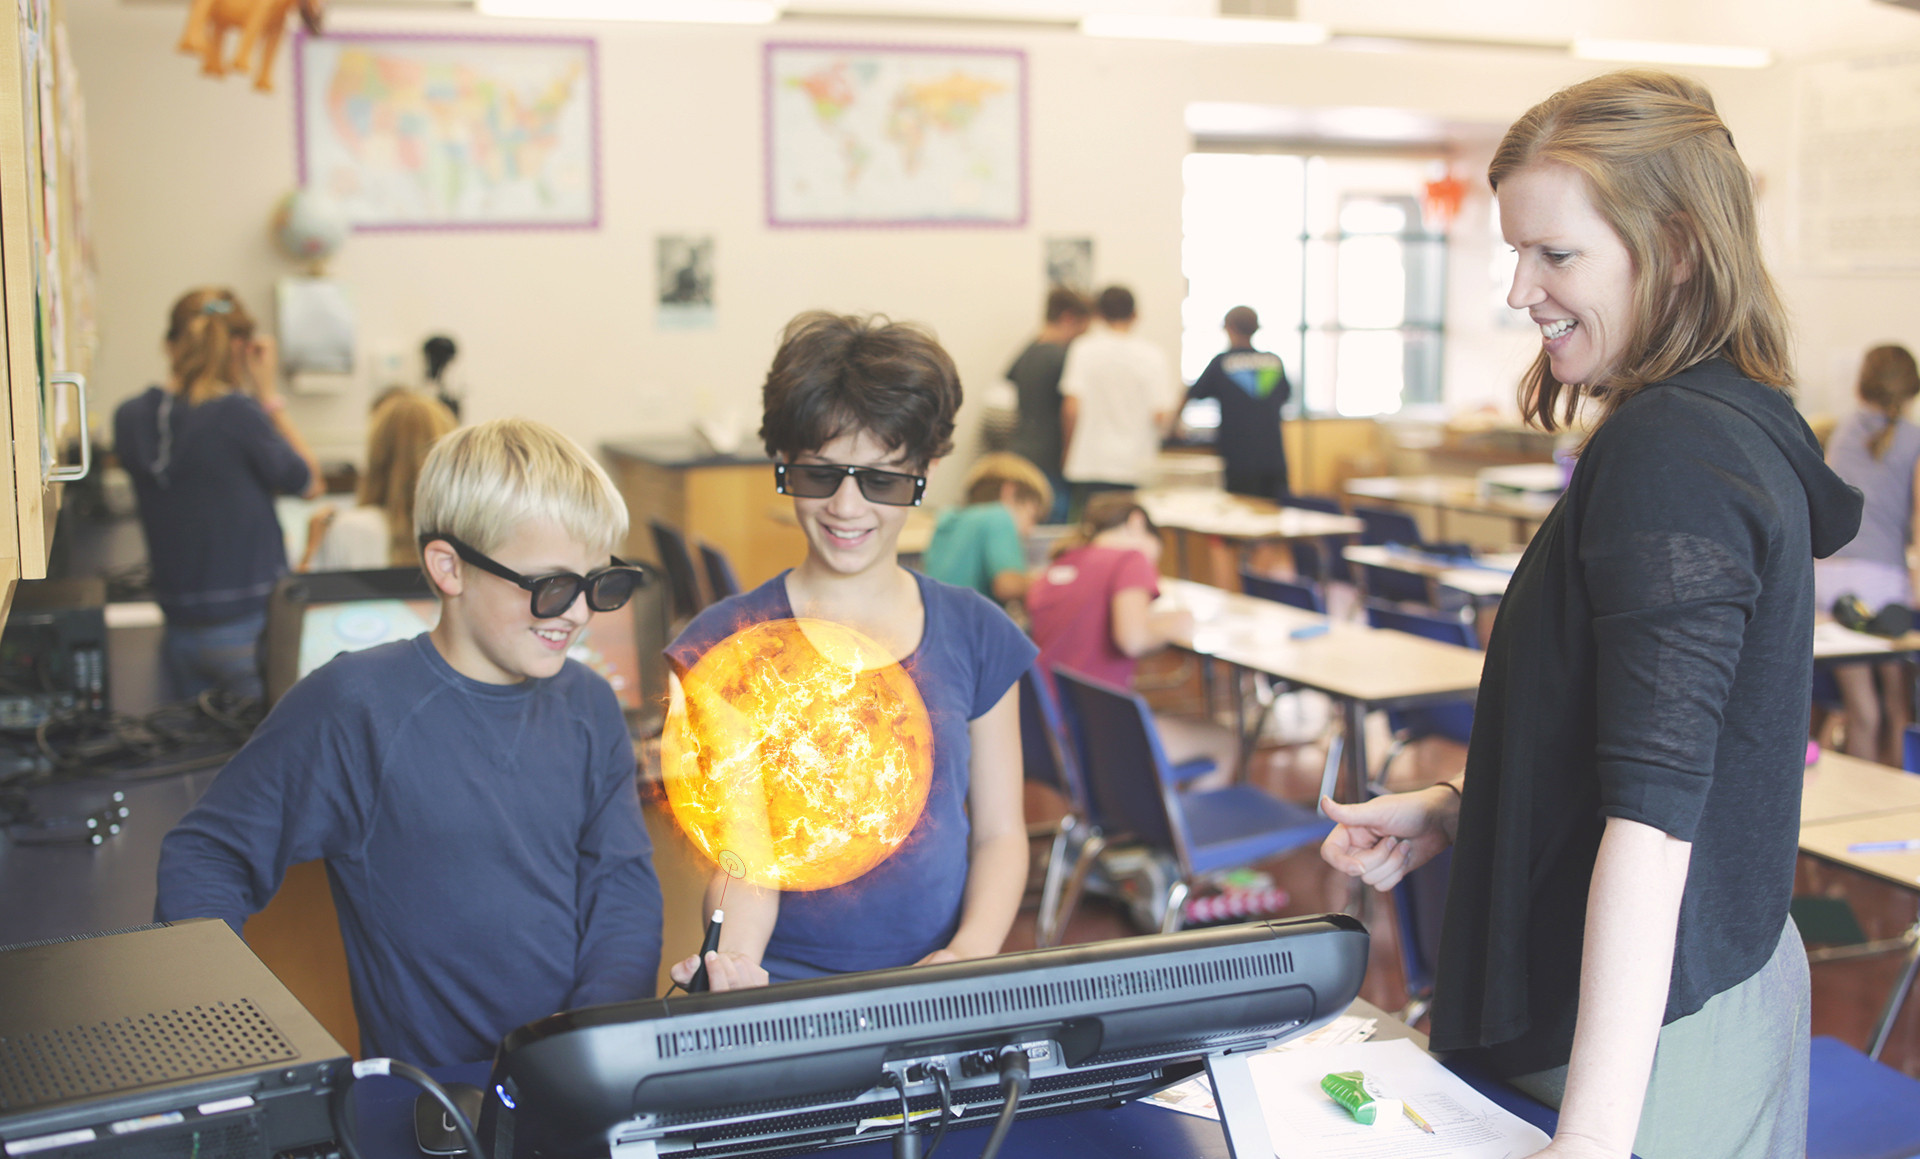 ZSpace virtual reality system makes science class look like 'Iron Man' lab